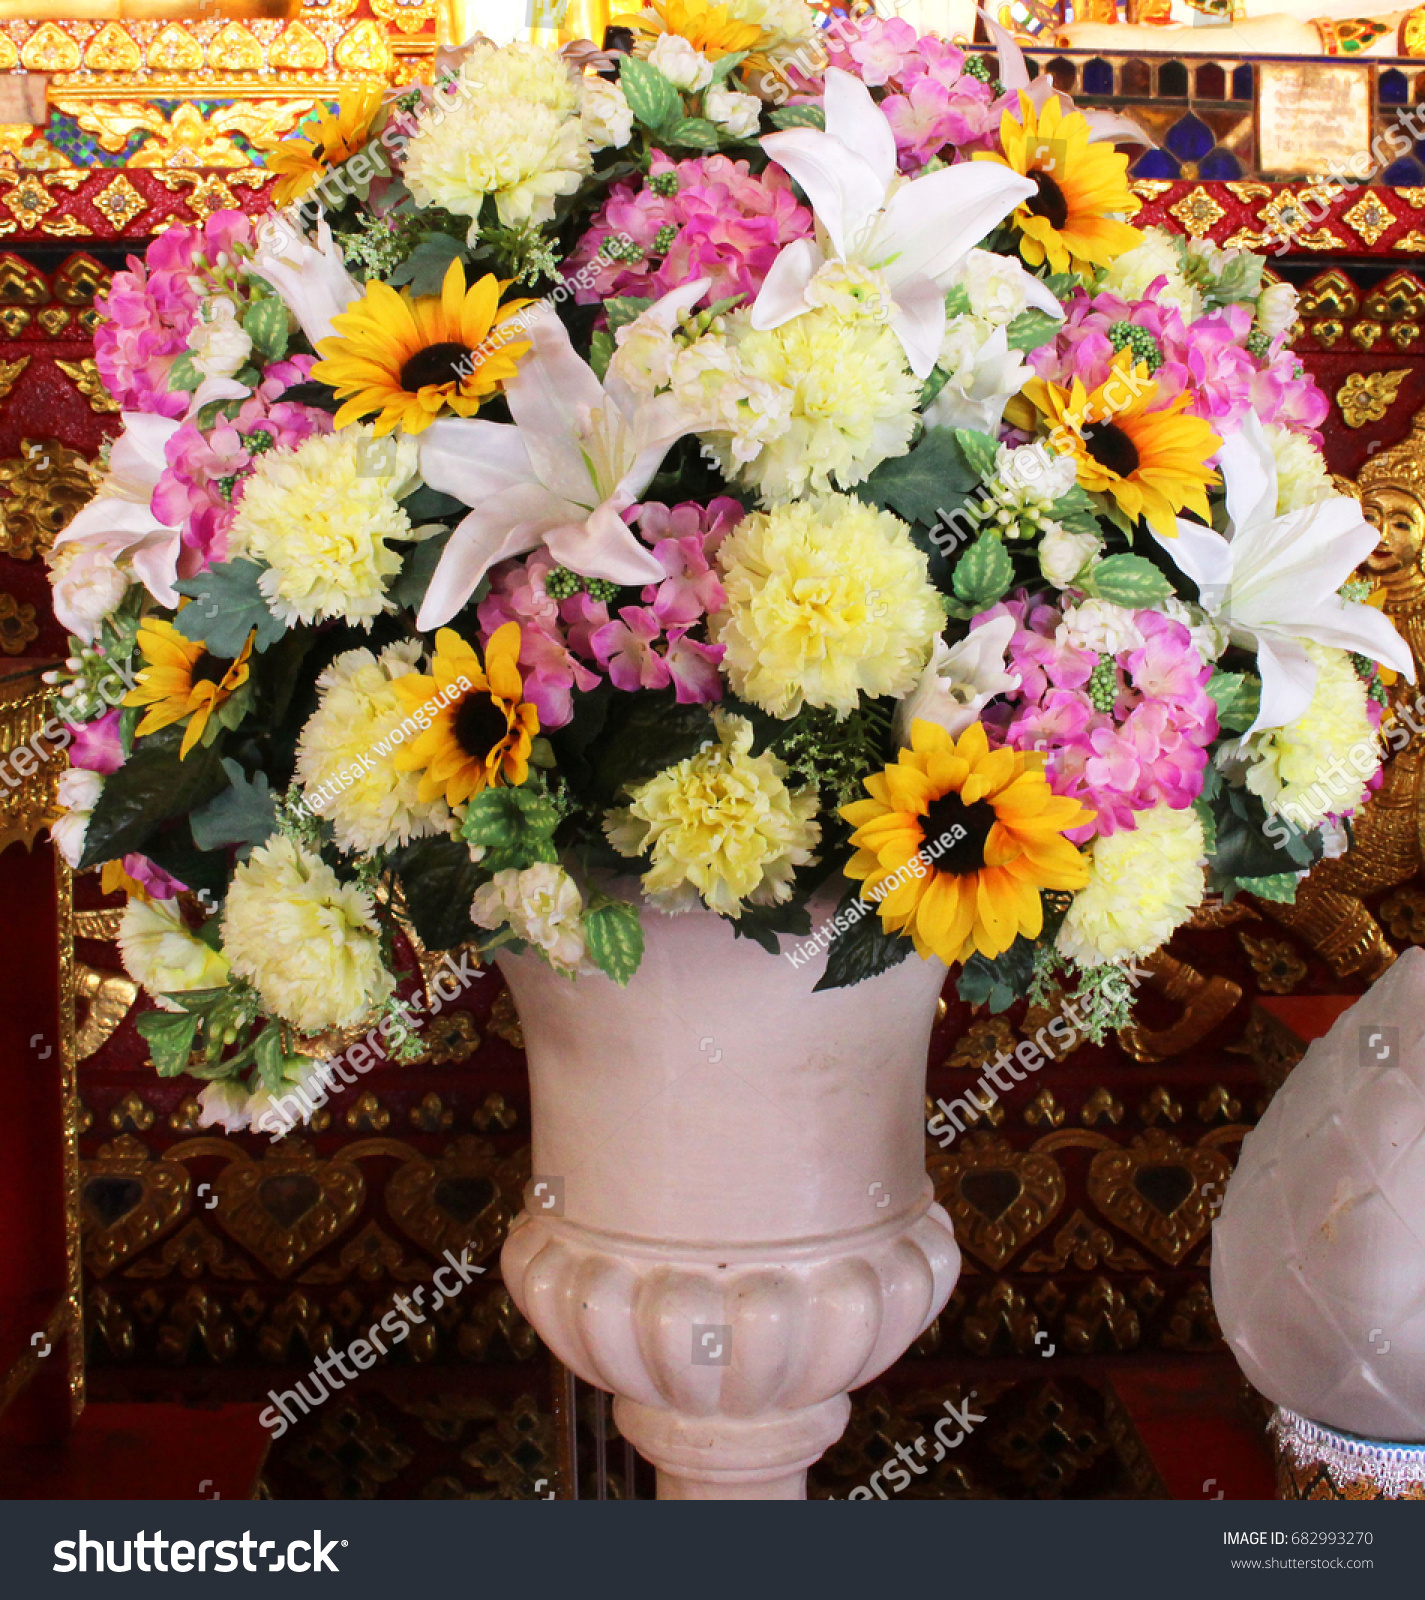 Beautiful Flower Vase Is A Beautiful Plastic Flower Used In Place Of Fresh Flowers,  Very Durable